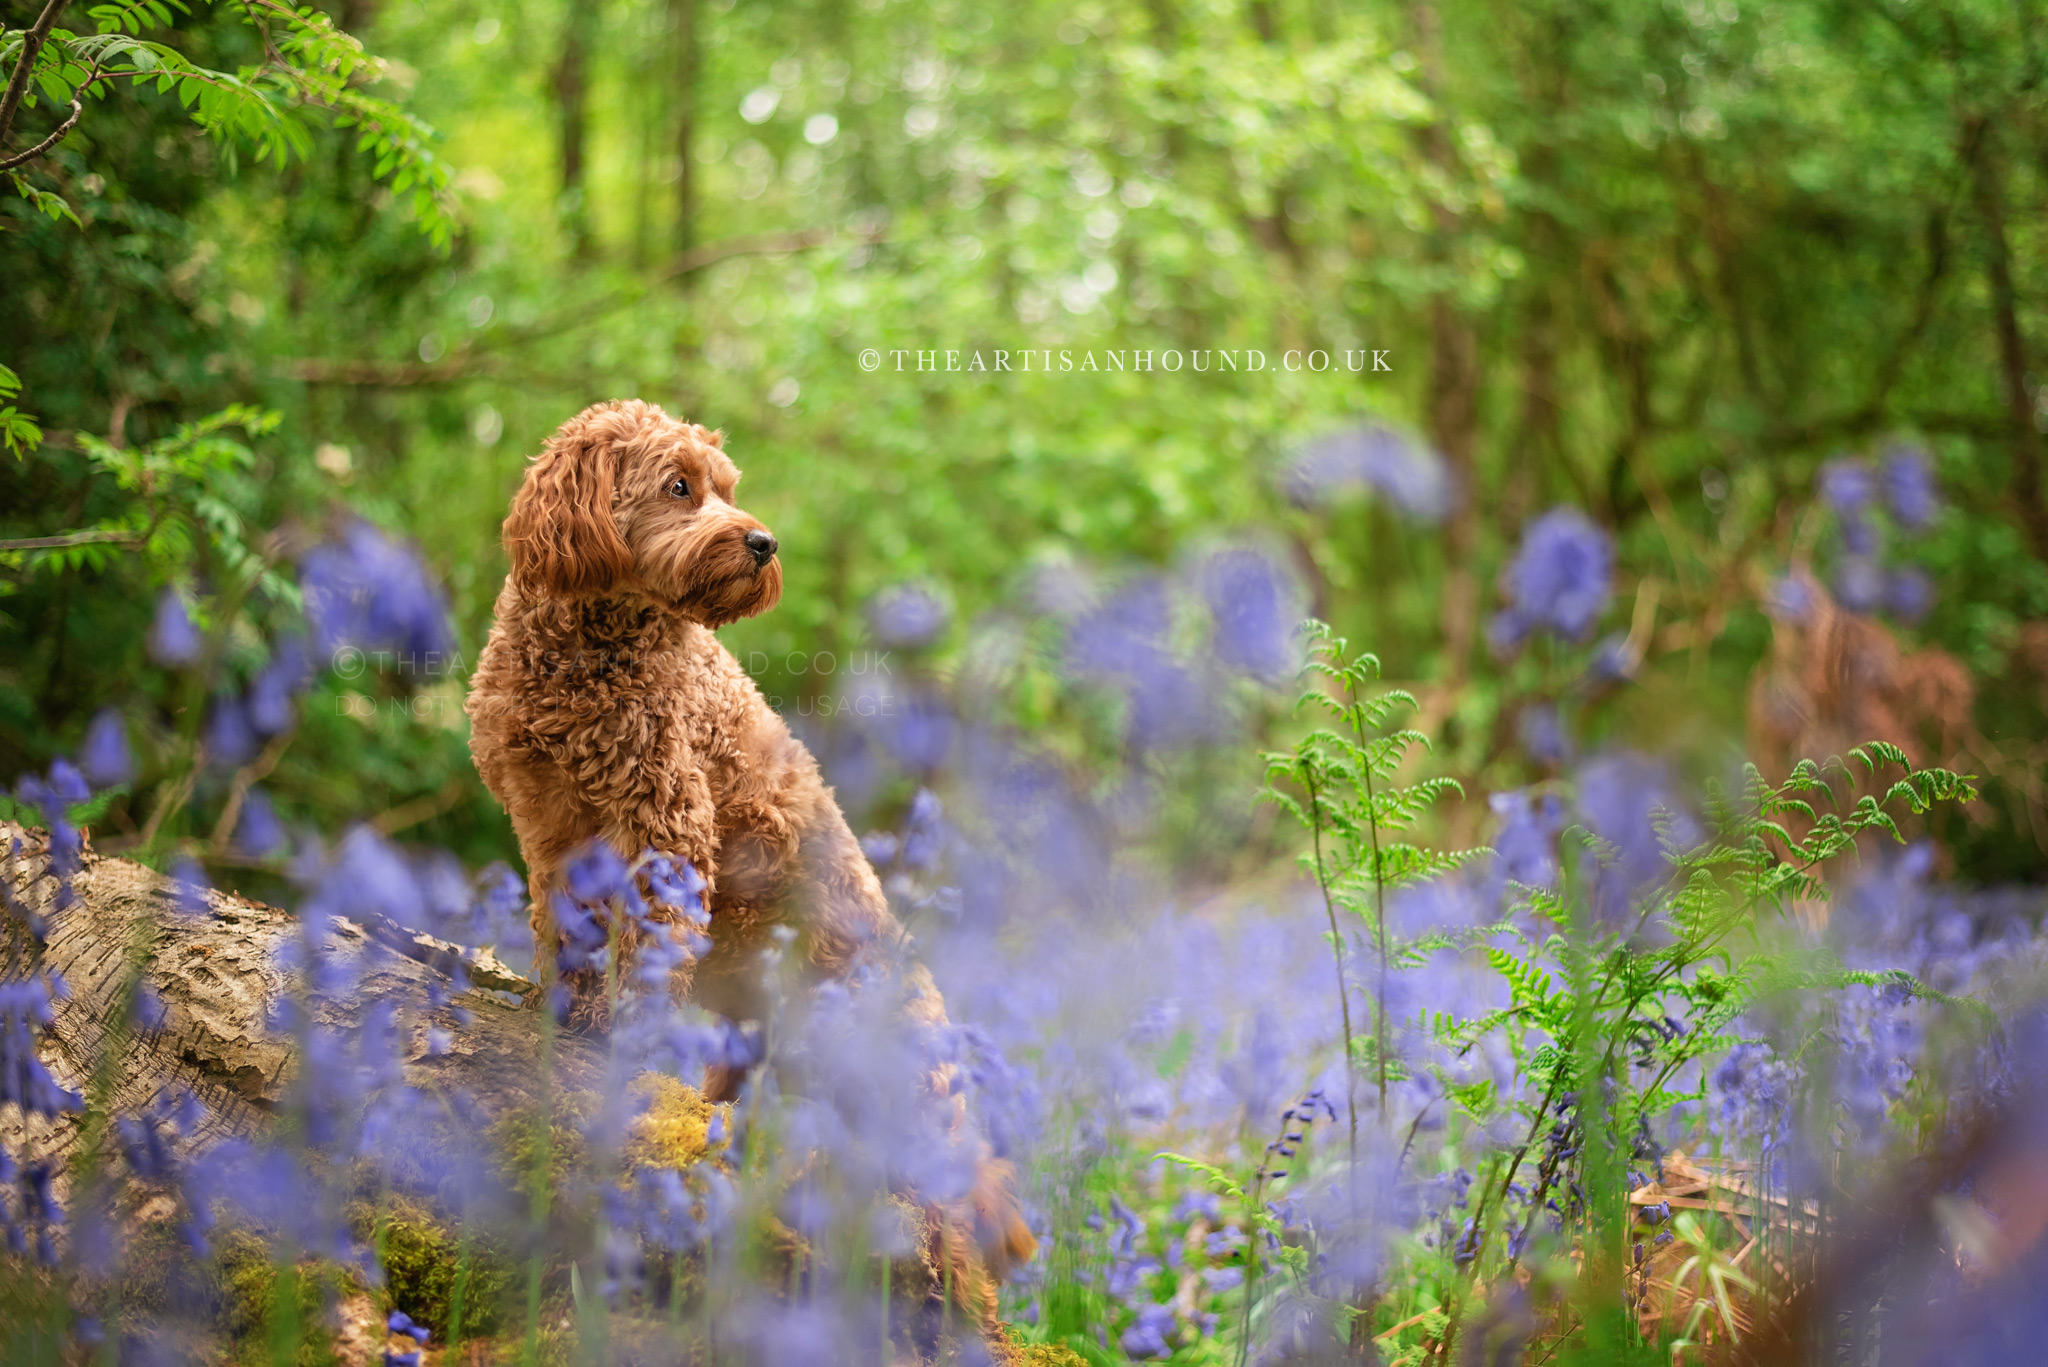 Cockapoo dog standing on log in bluebell woods